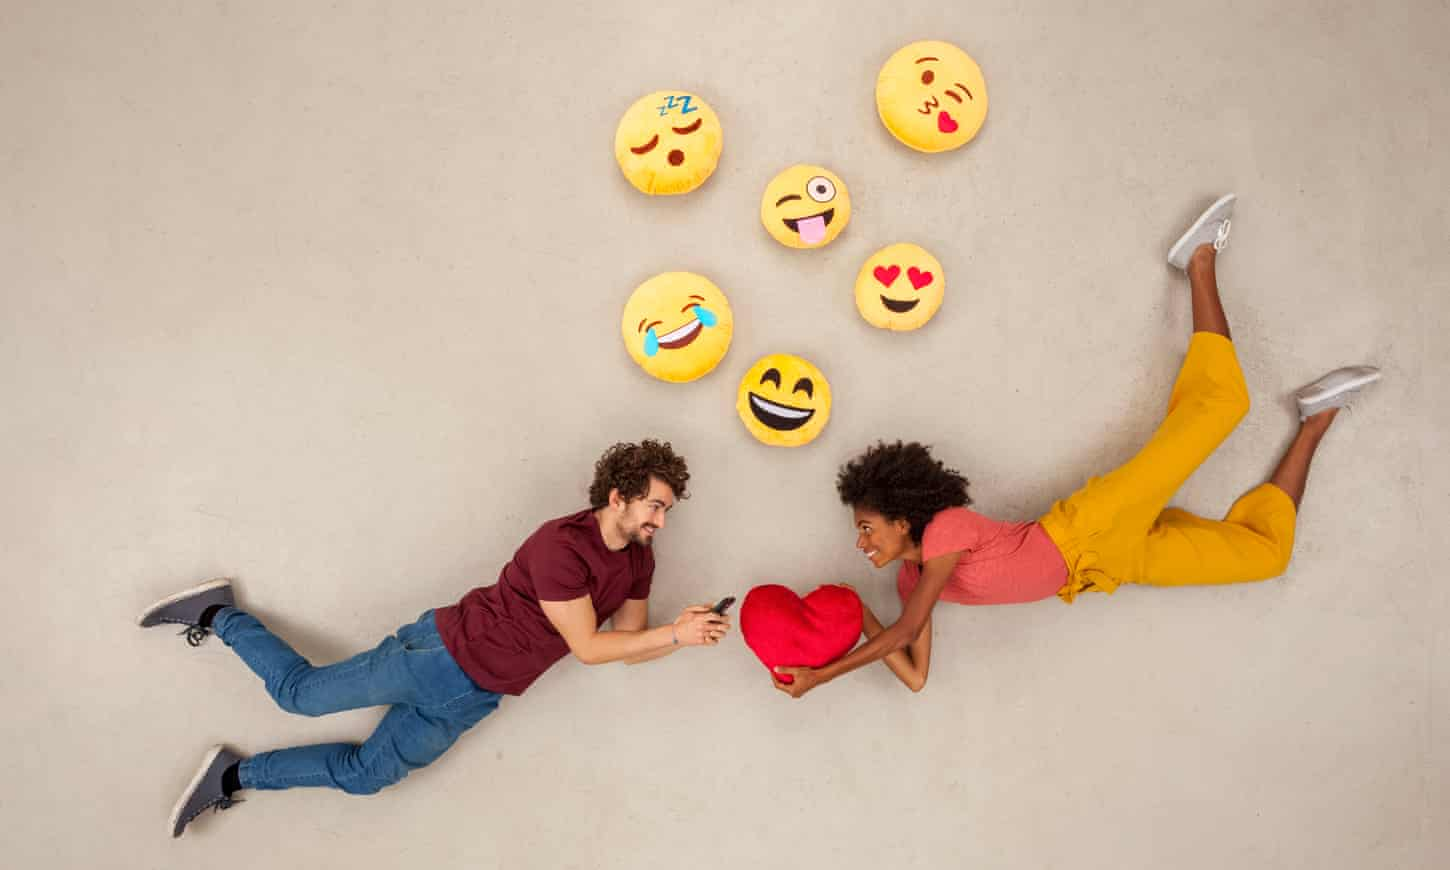 Why emoji use could lead to more sex